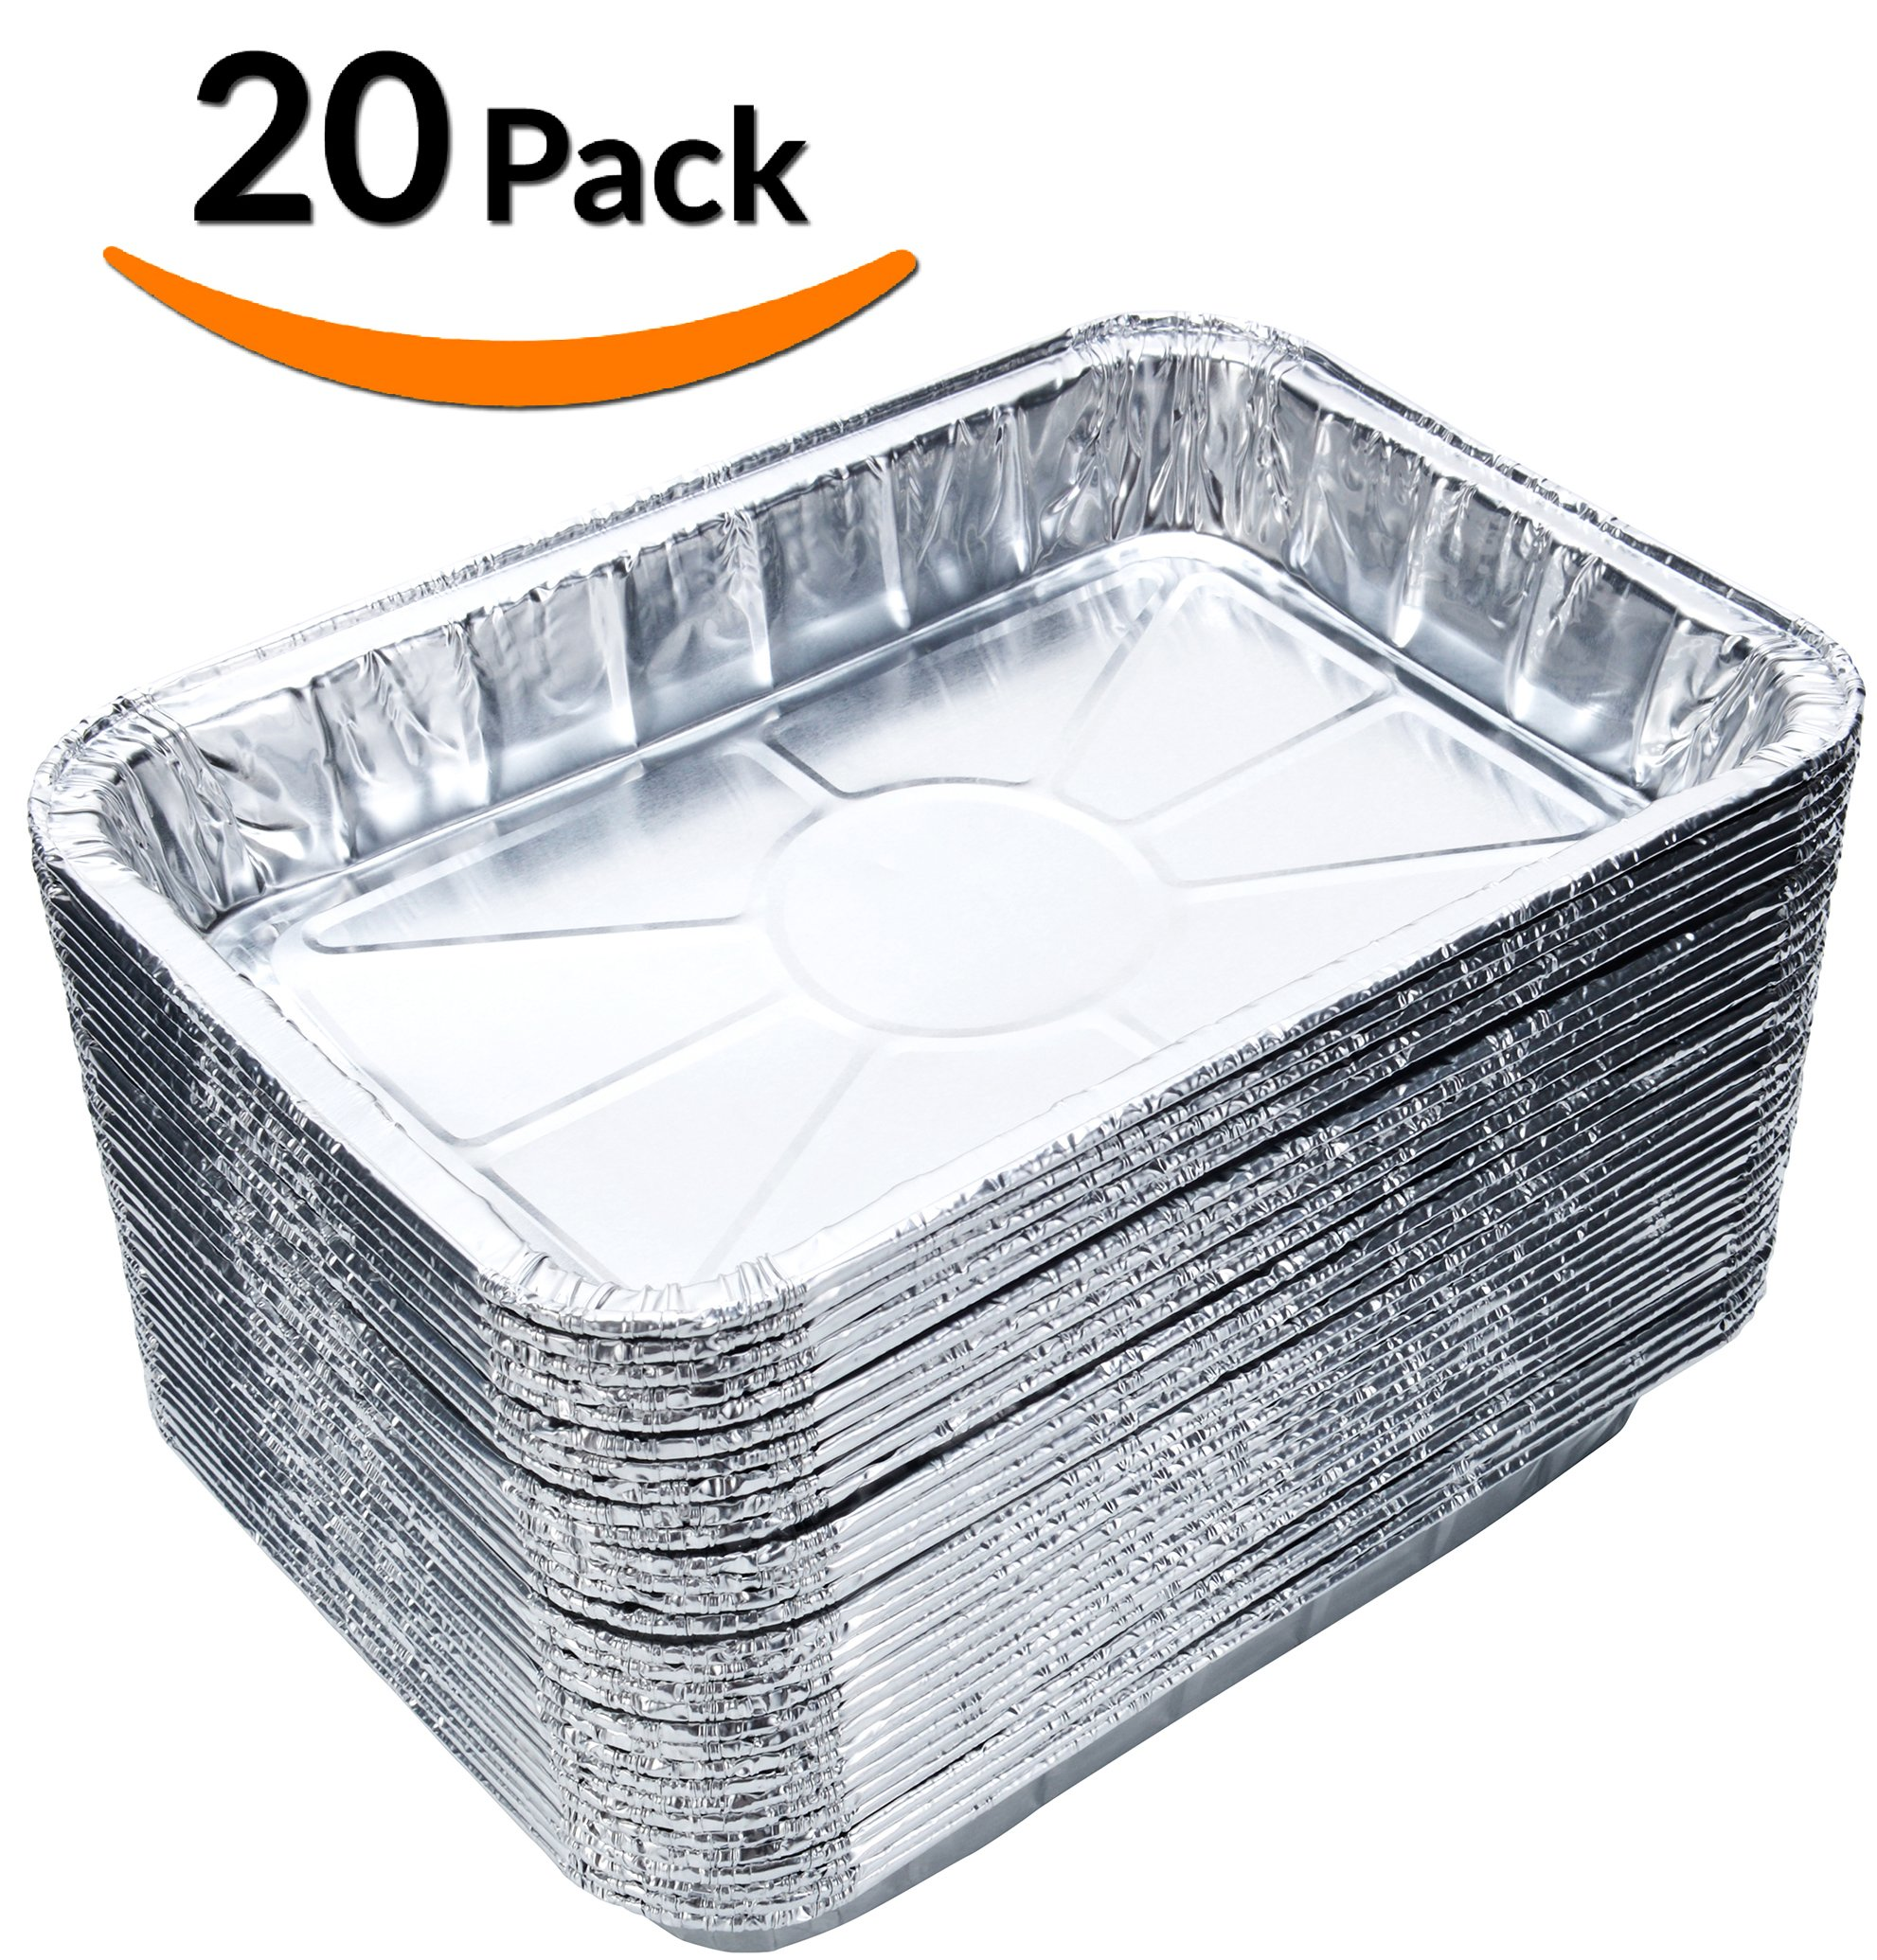 DOBI (20-Pack) Toaster Oven Pans - Disposable Aluminum Foil Toaster Oven Pans, Standard Size - 8 1/2'' x 6''